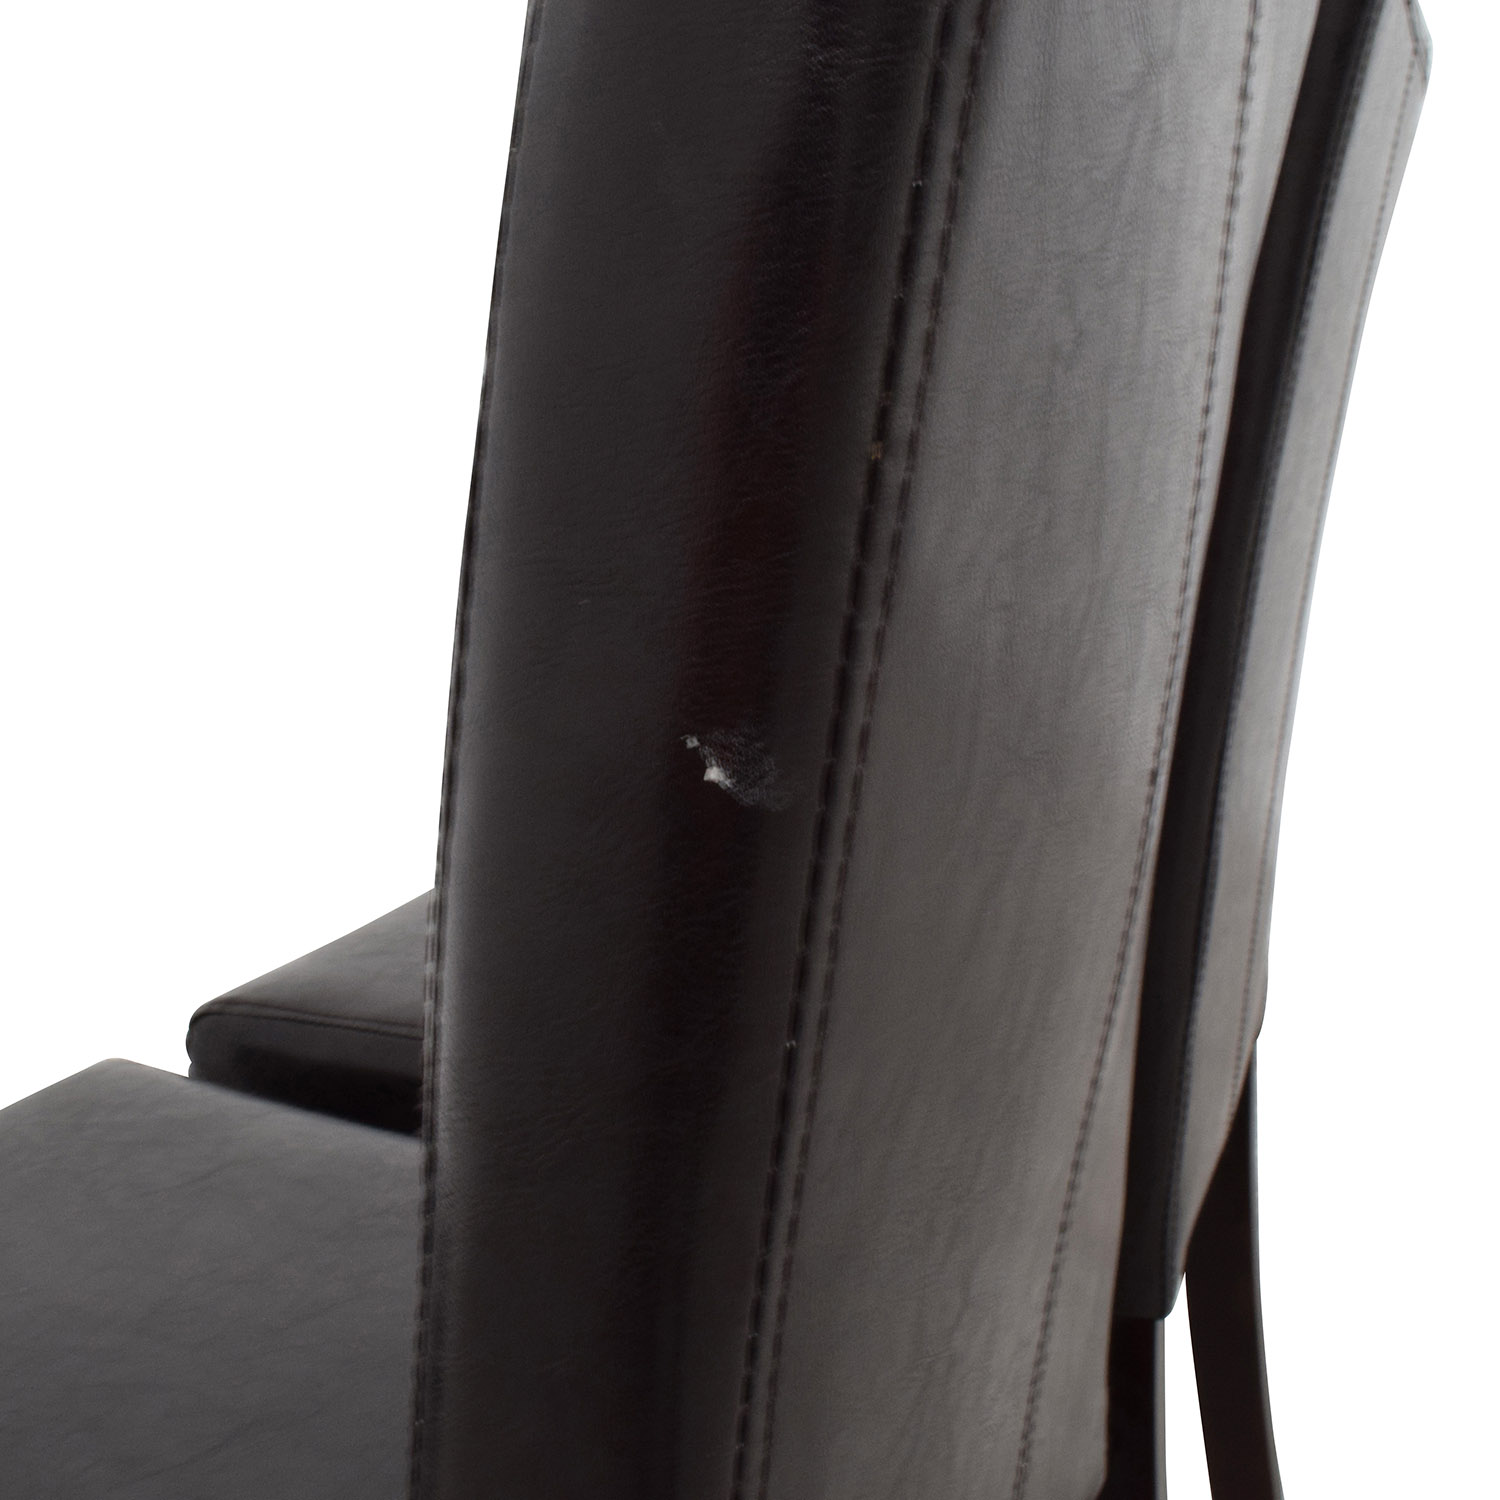 Roundhill Roundhill Solid Wood Leatherette Padded Parson Chairs nj